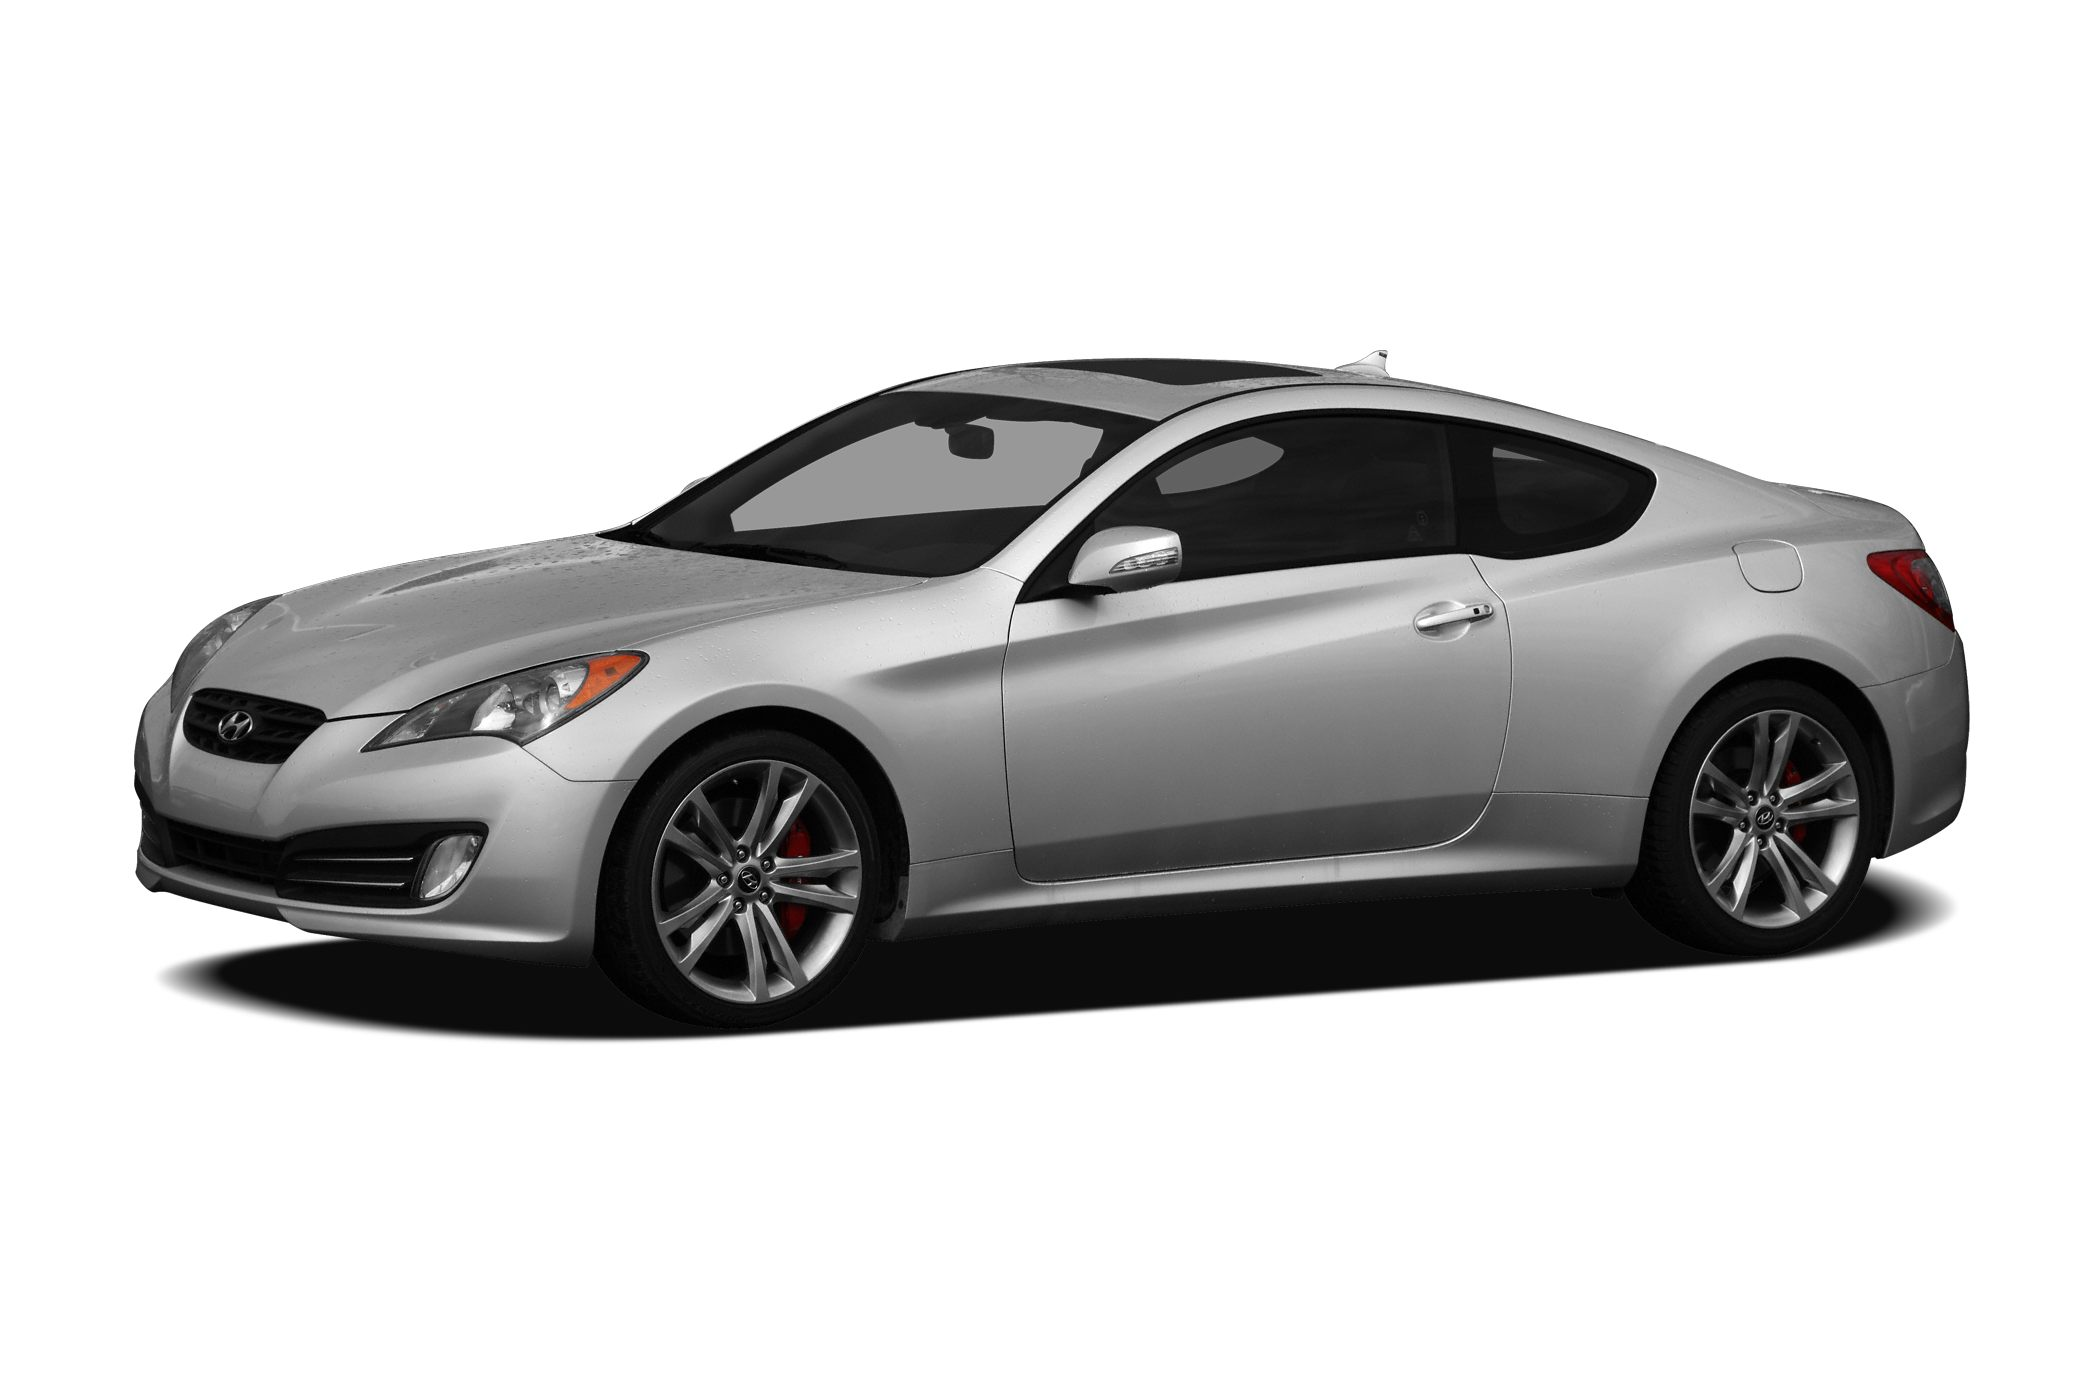 2011 Hyundai Genesis Coupe Specs Safety Rating Amp Mpg